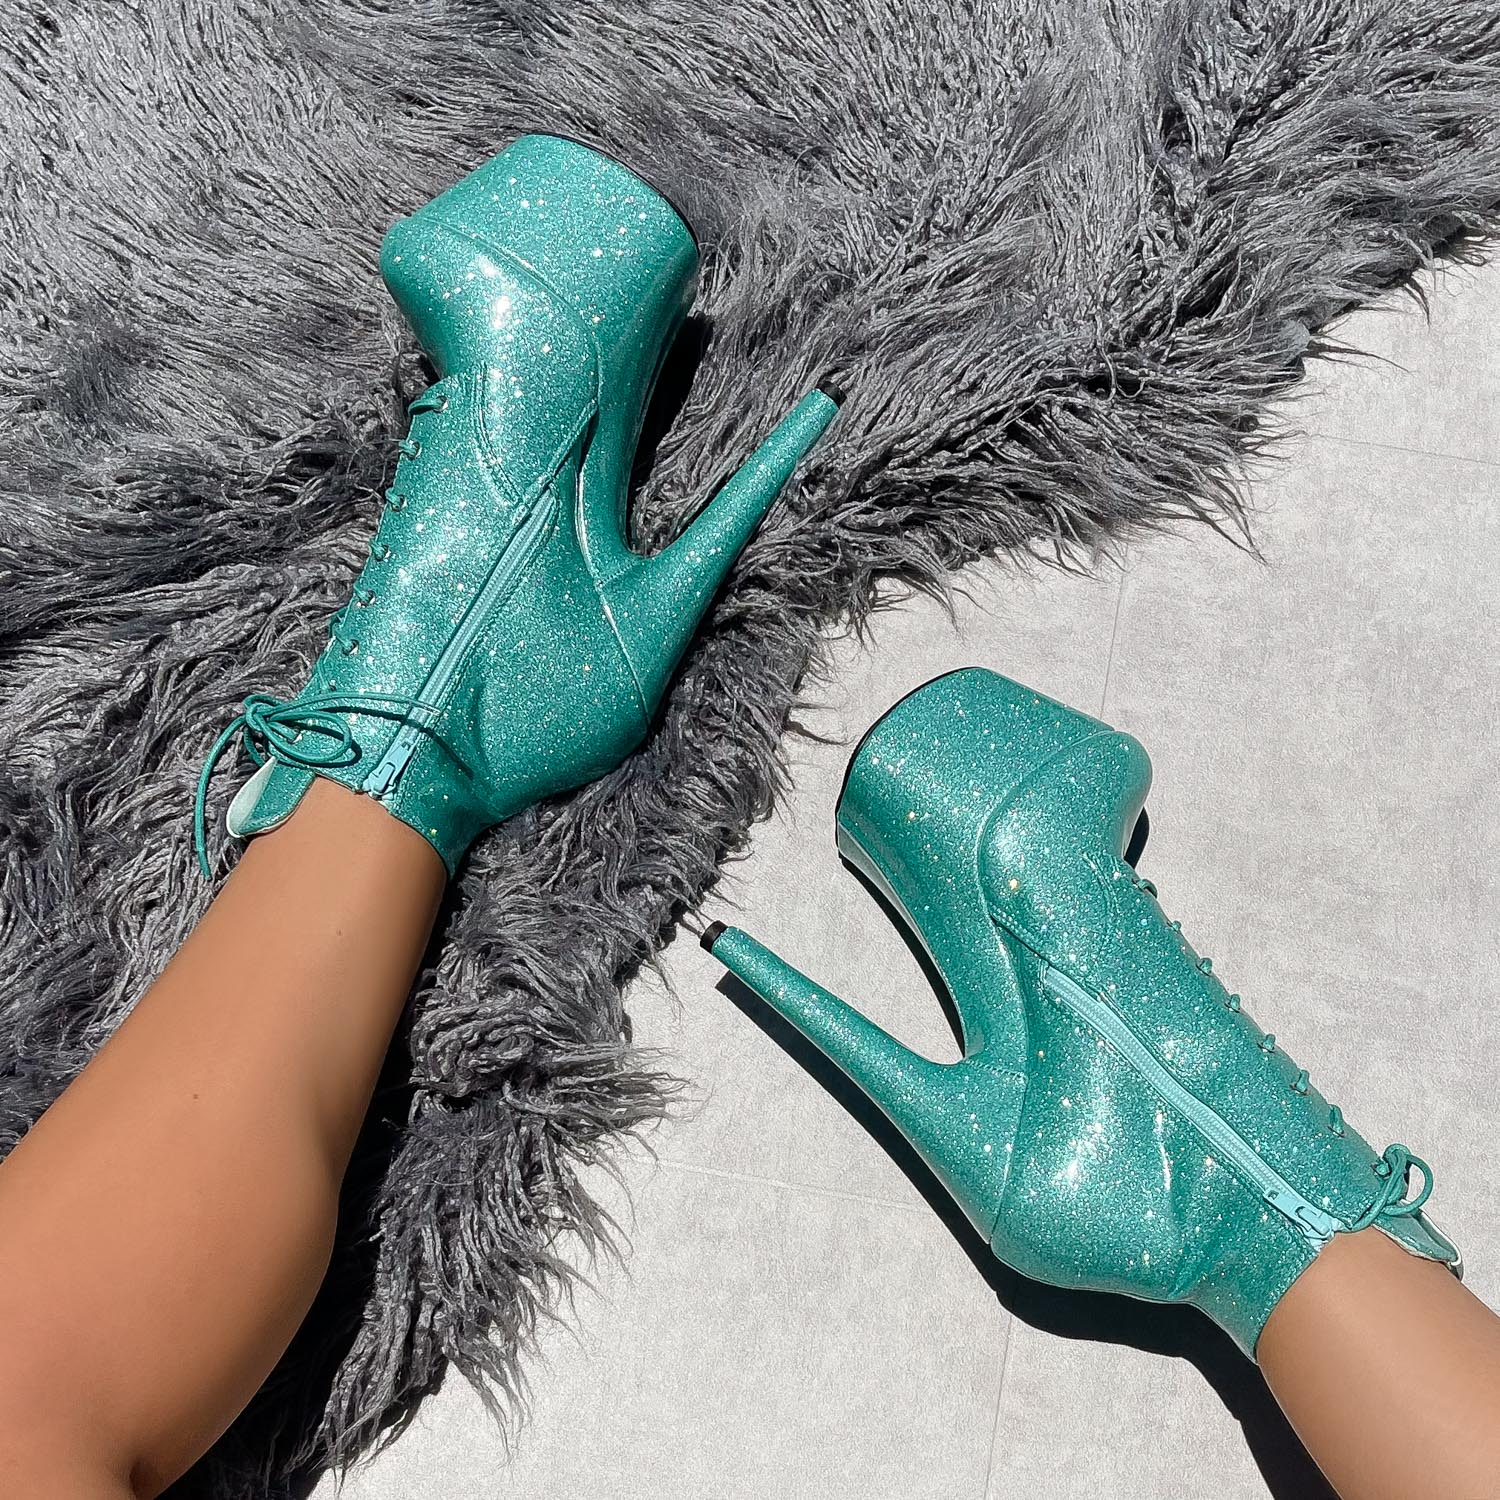 The Glitterati Ankle Boot - Baby Blues - 7 INCH